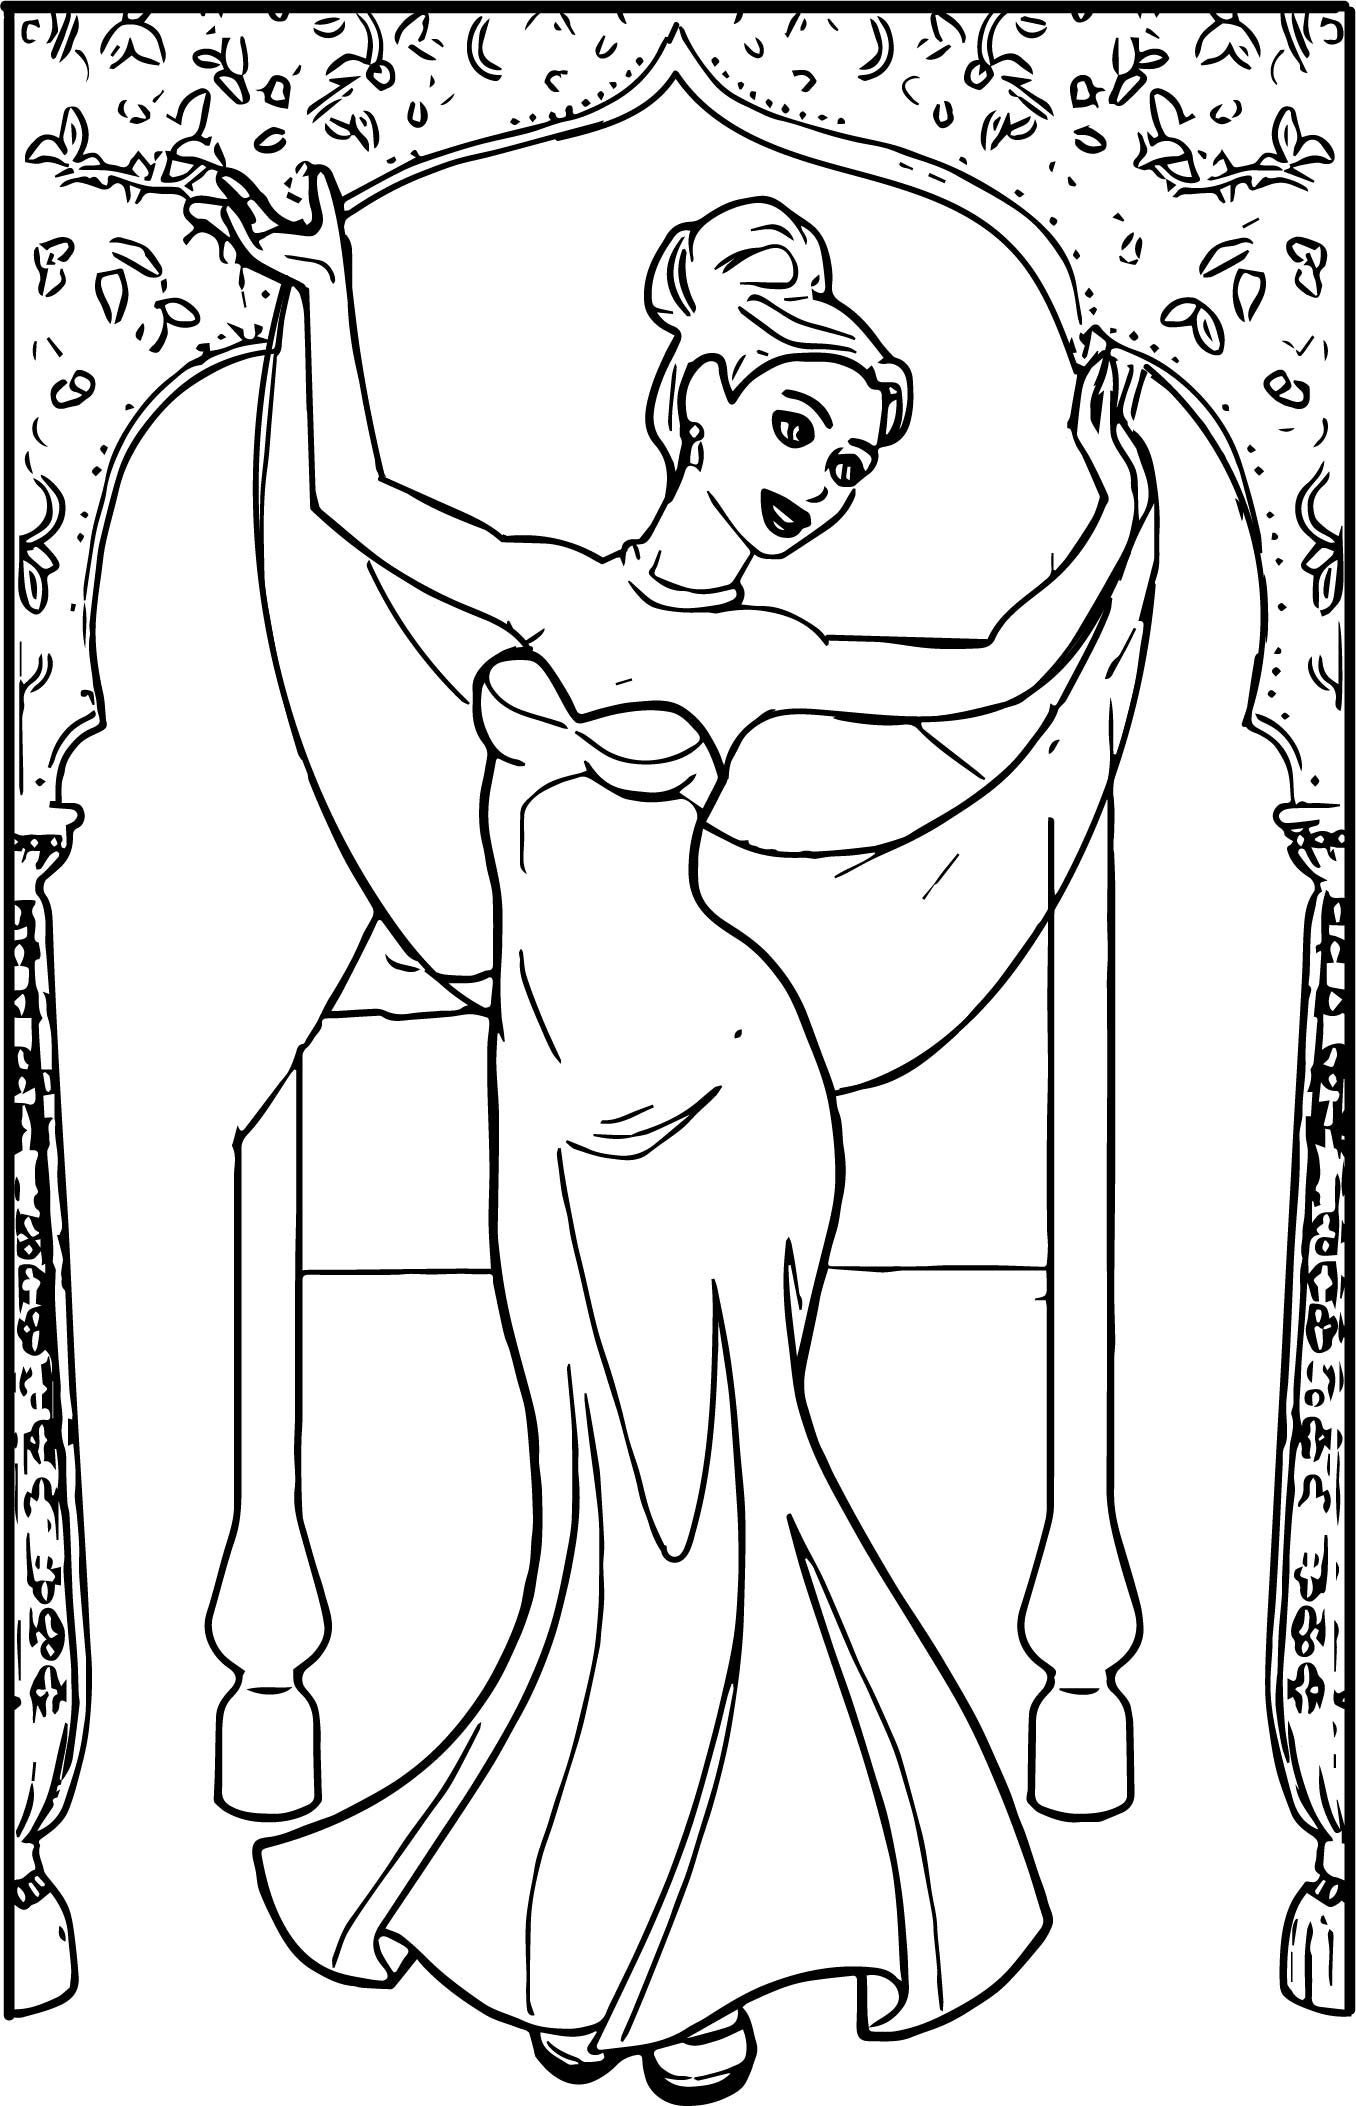 1356x2106 Dancing Coloring Pages With Jazz Dance For Kids